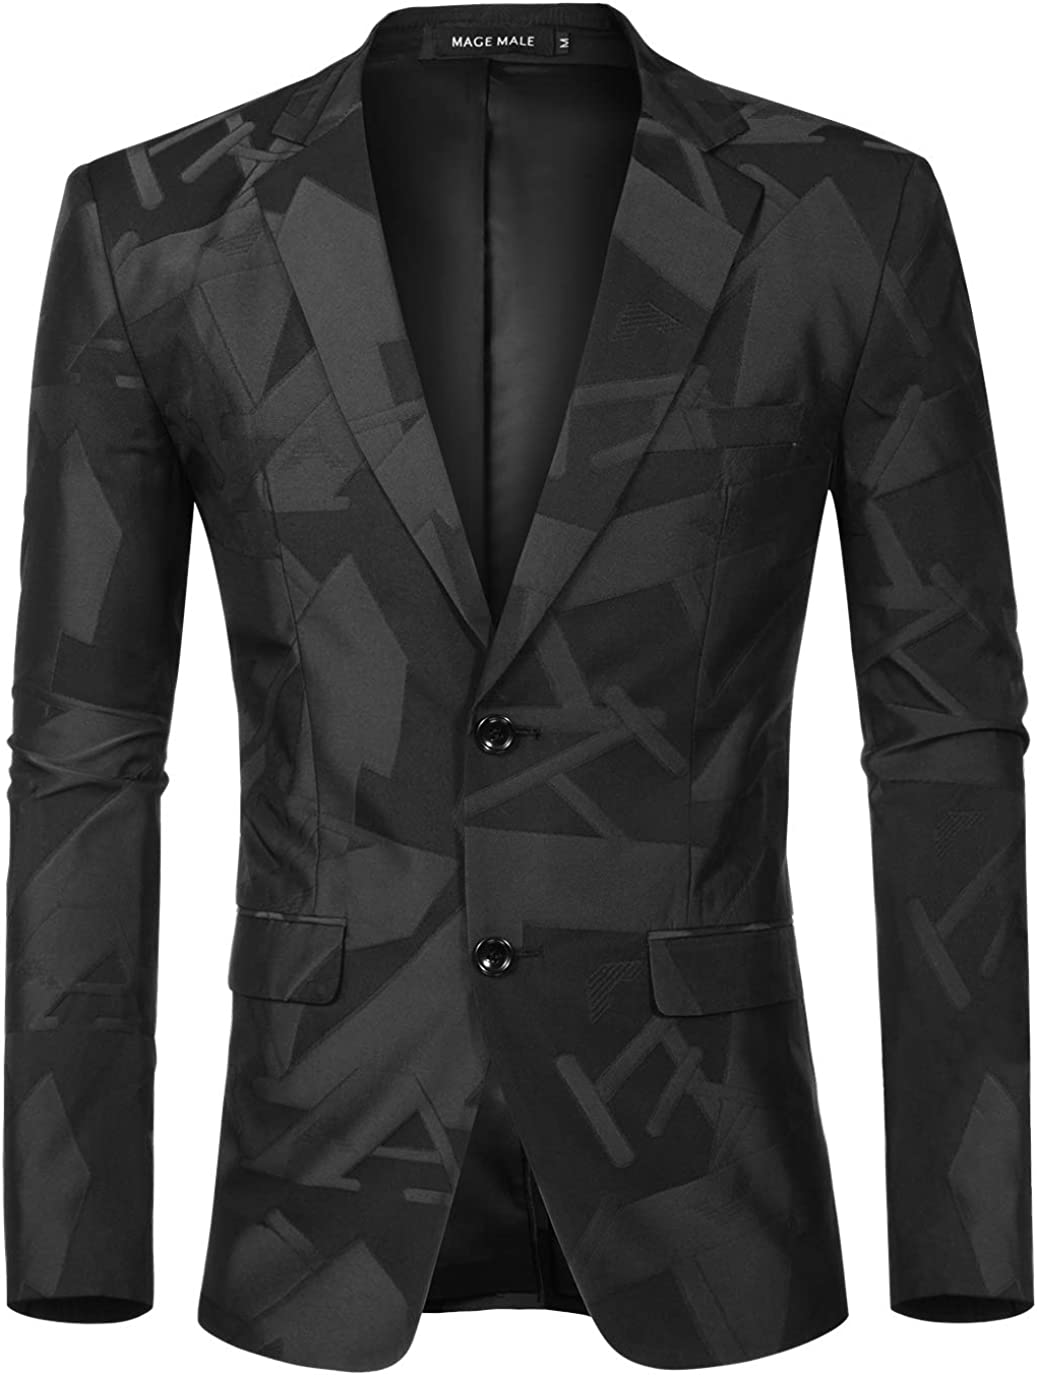 MAGE MALE Men's Dress Floral Blazer Suit Slim Fit Two Button Notched Lapel Elegant Prom Party Tuxedo Suit Jacket